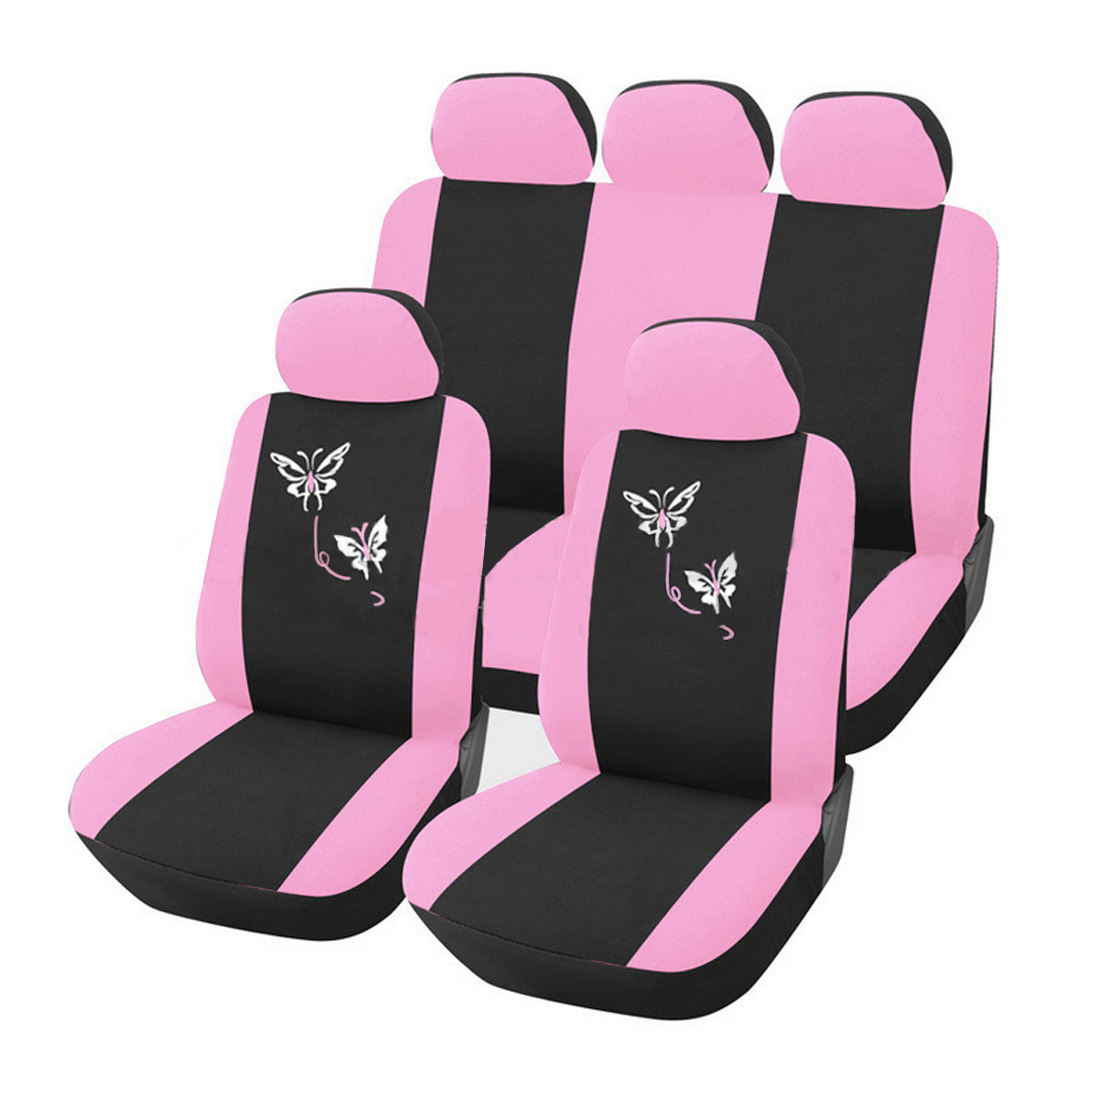 Dewtreetali Car Seat Covers For Women Universal Fit Most Cars Airbag Compatible Pink Flower Embroidery Car-styling DecorationDewtreetali Car Seat Covers For Women Universal Fit Most Cars Airbag Compatible Pink Flower Embroidery Car-styling Decoration